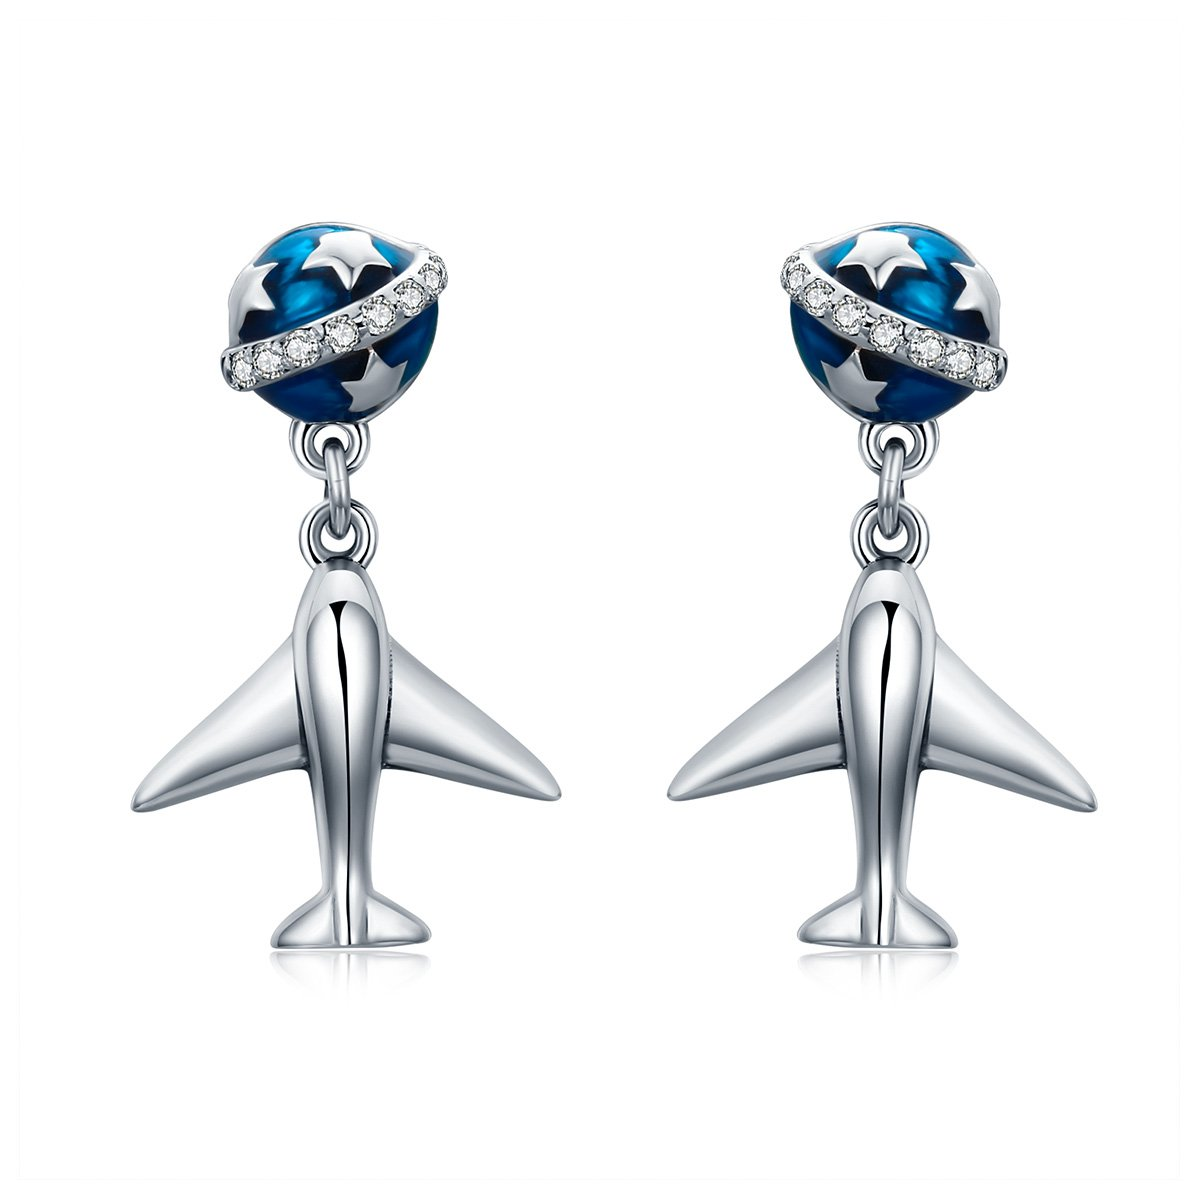 WOSTU 925 Sterling Silver Plane and Earth Travel Earrings ''Enjoy Life'' Dangle Drop Earrings for Girls